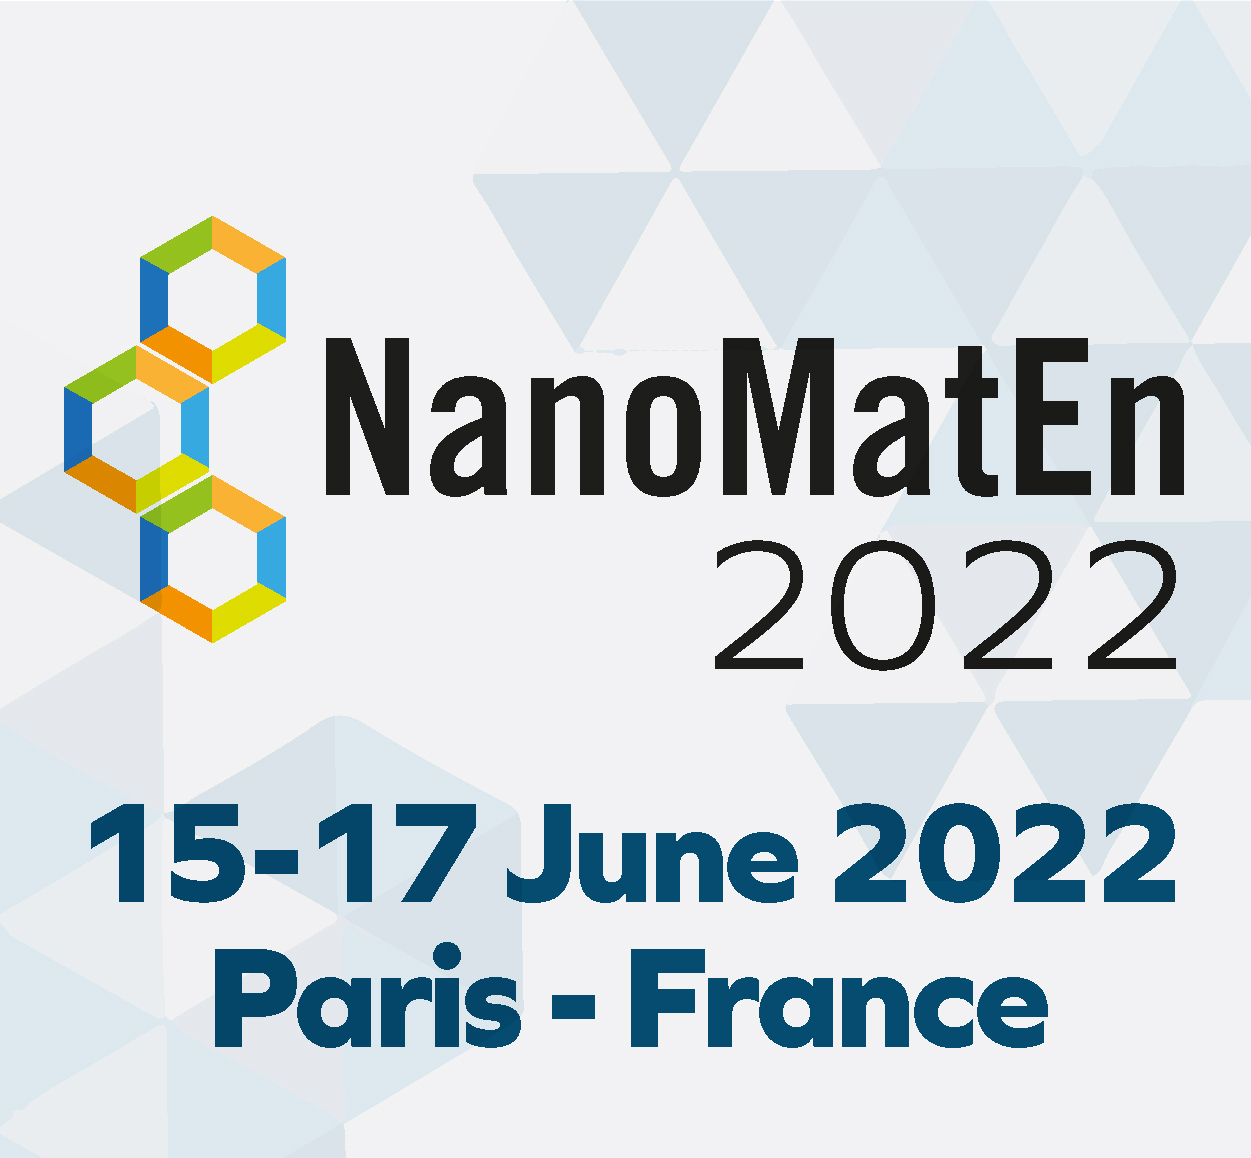 The 7th Ed. of the International conference and exhibition on NanoMaterials for Energy & Environment - NanoMatEn 2022